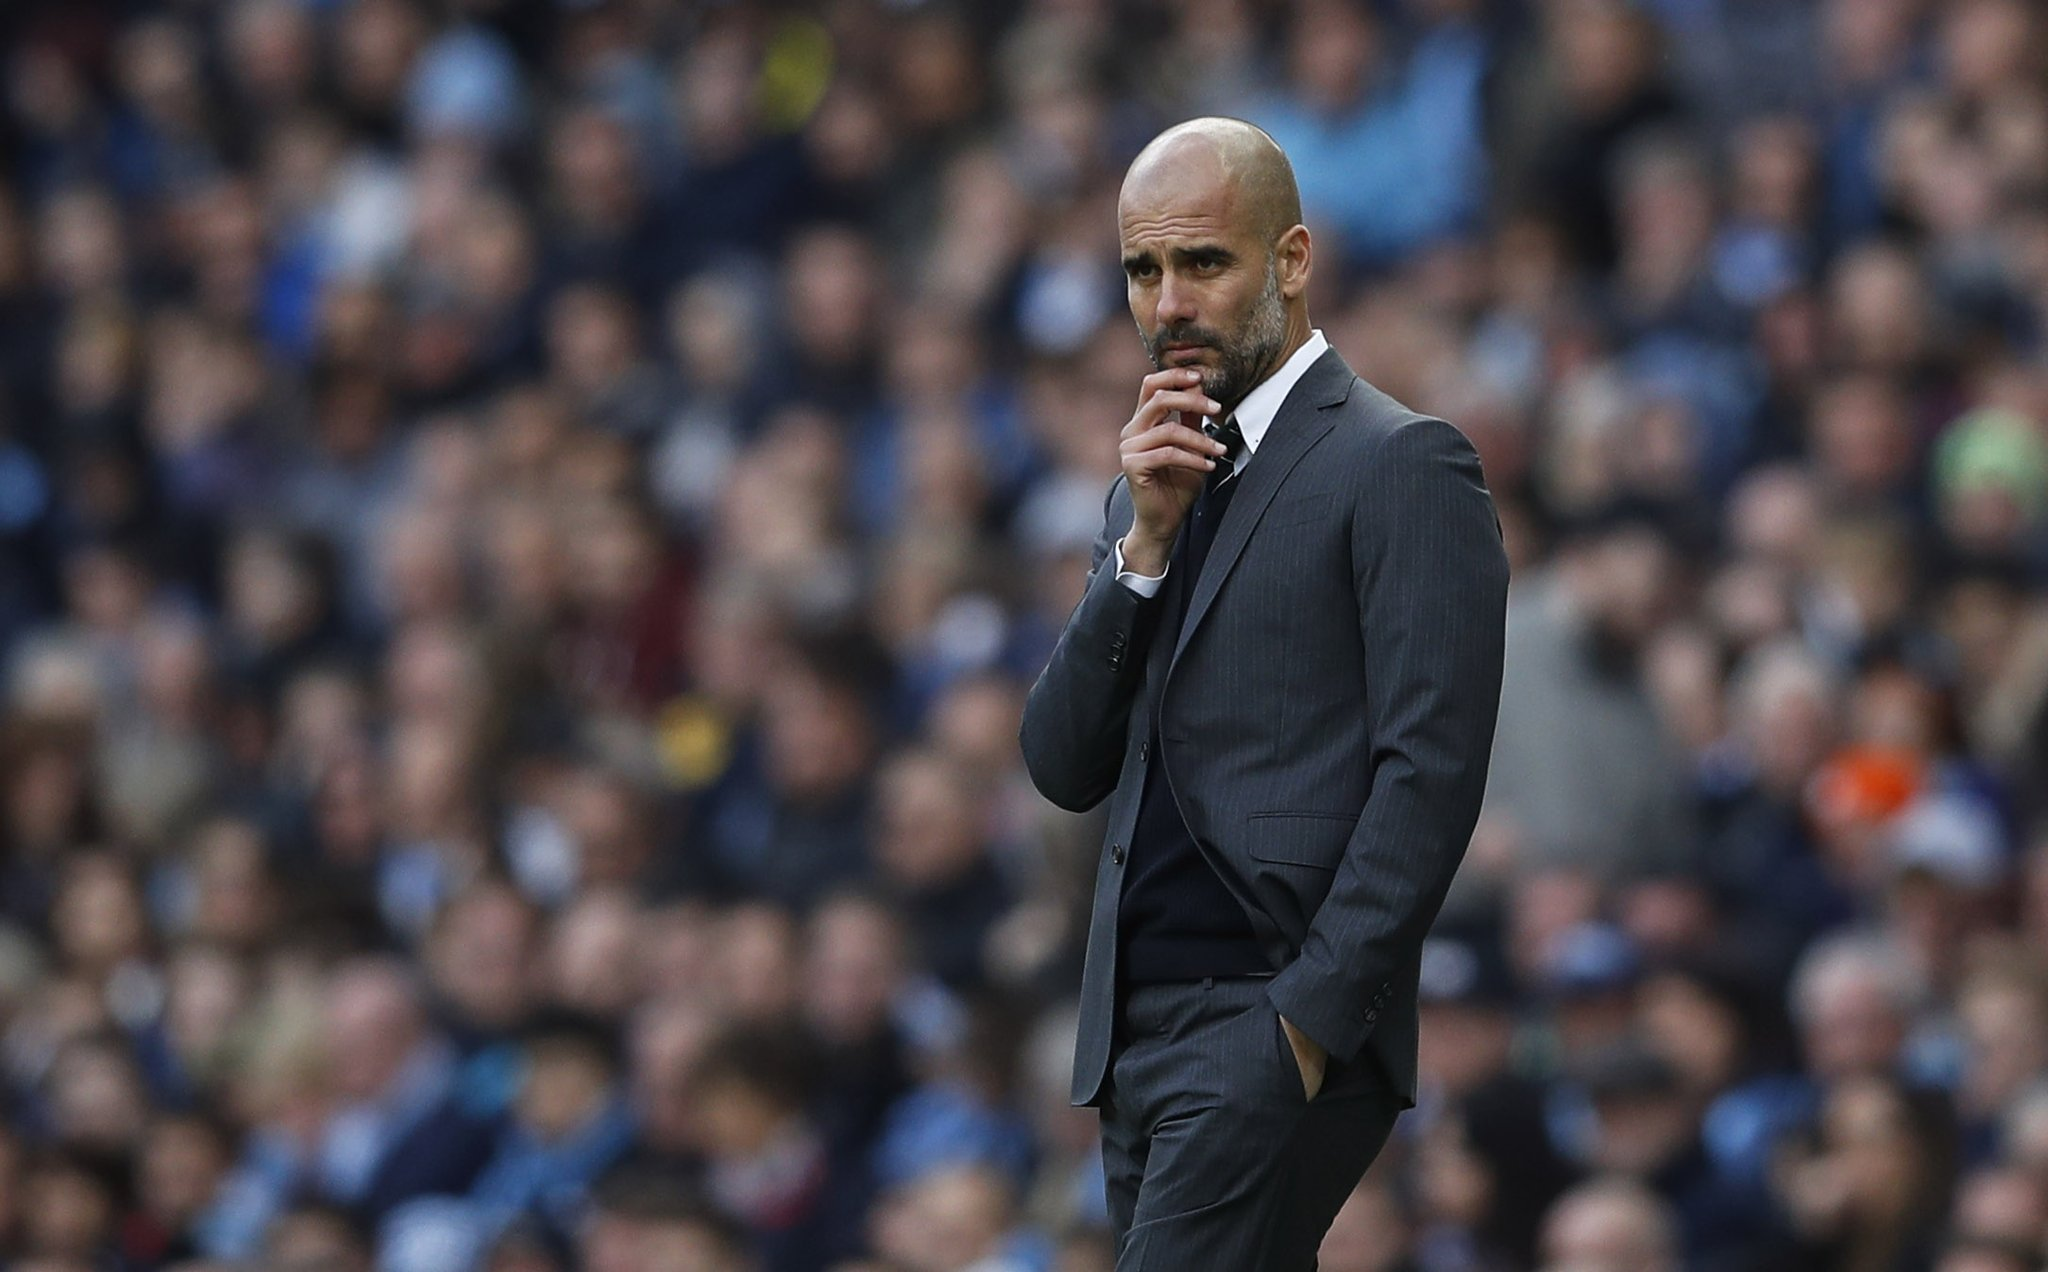 Guardiola Silent On Iheanacho, Other City Stars' Future; Focuses On Watford 'Final'